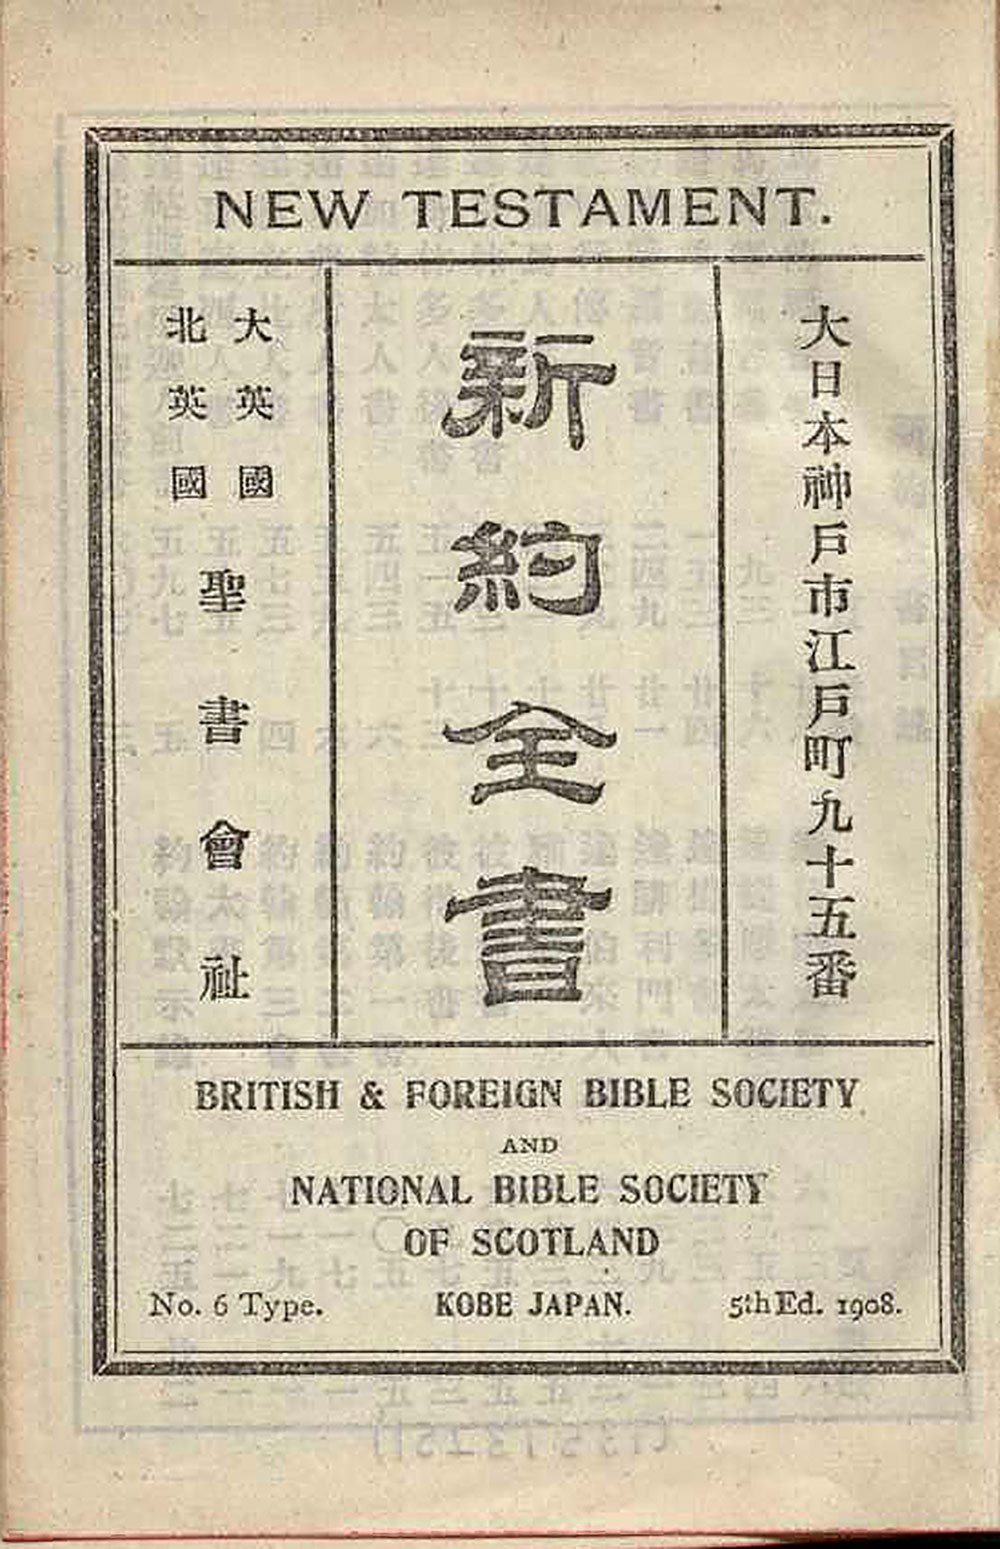 [New Testament in Japanese]. <em>New Testament.</em> Fifth edition. Kobe, Japan: British & Foreign Bible Society and National Bible Society of Scotland, 1908.